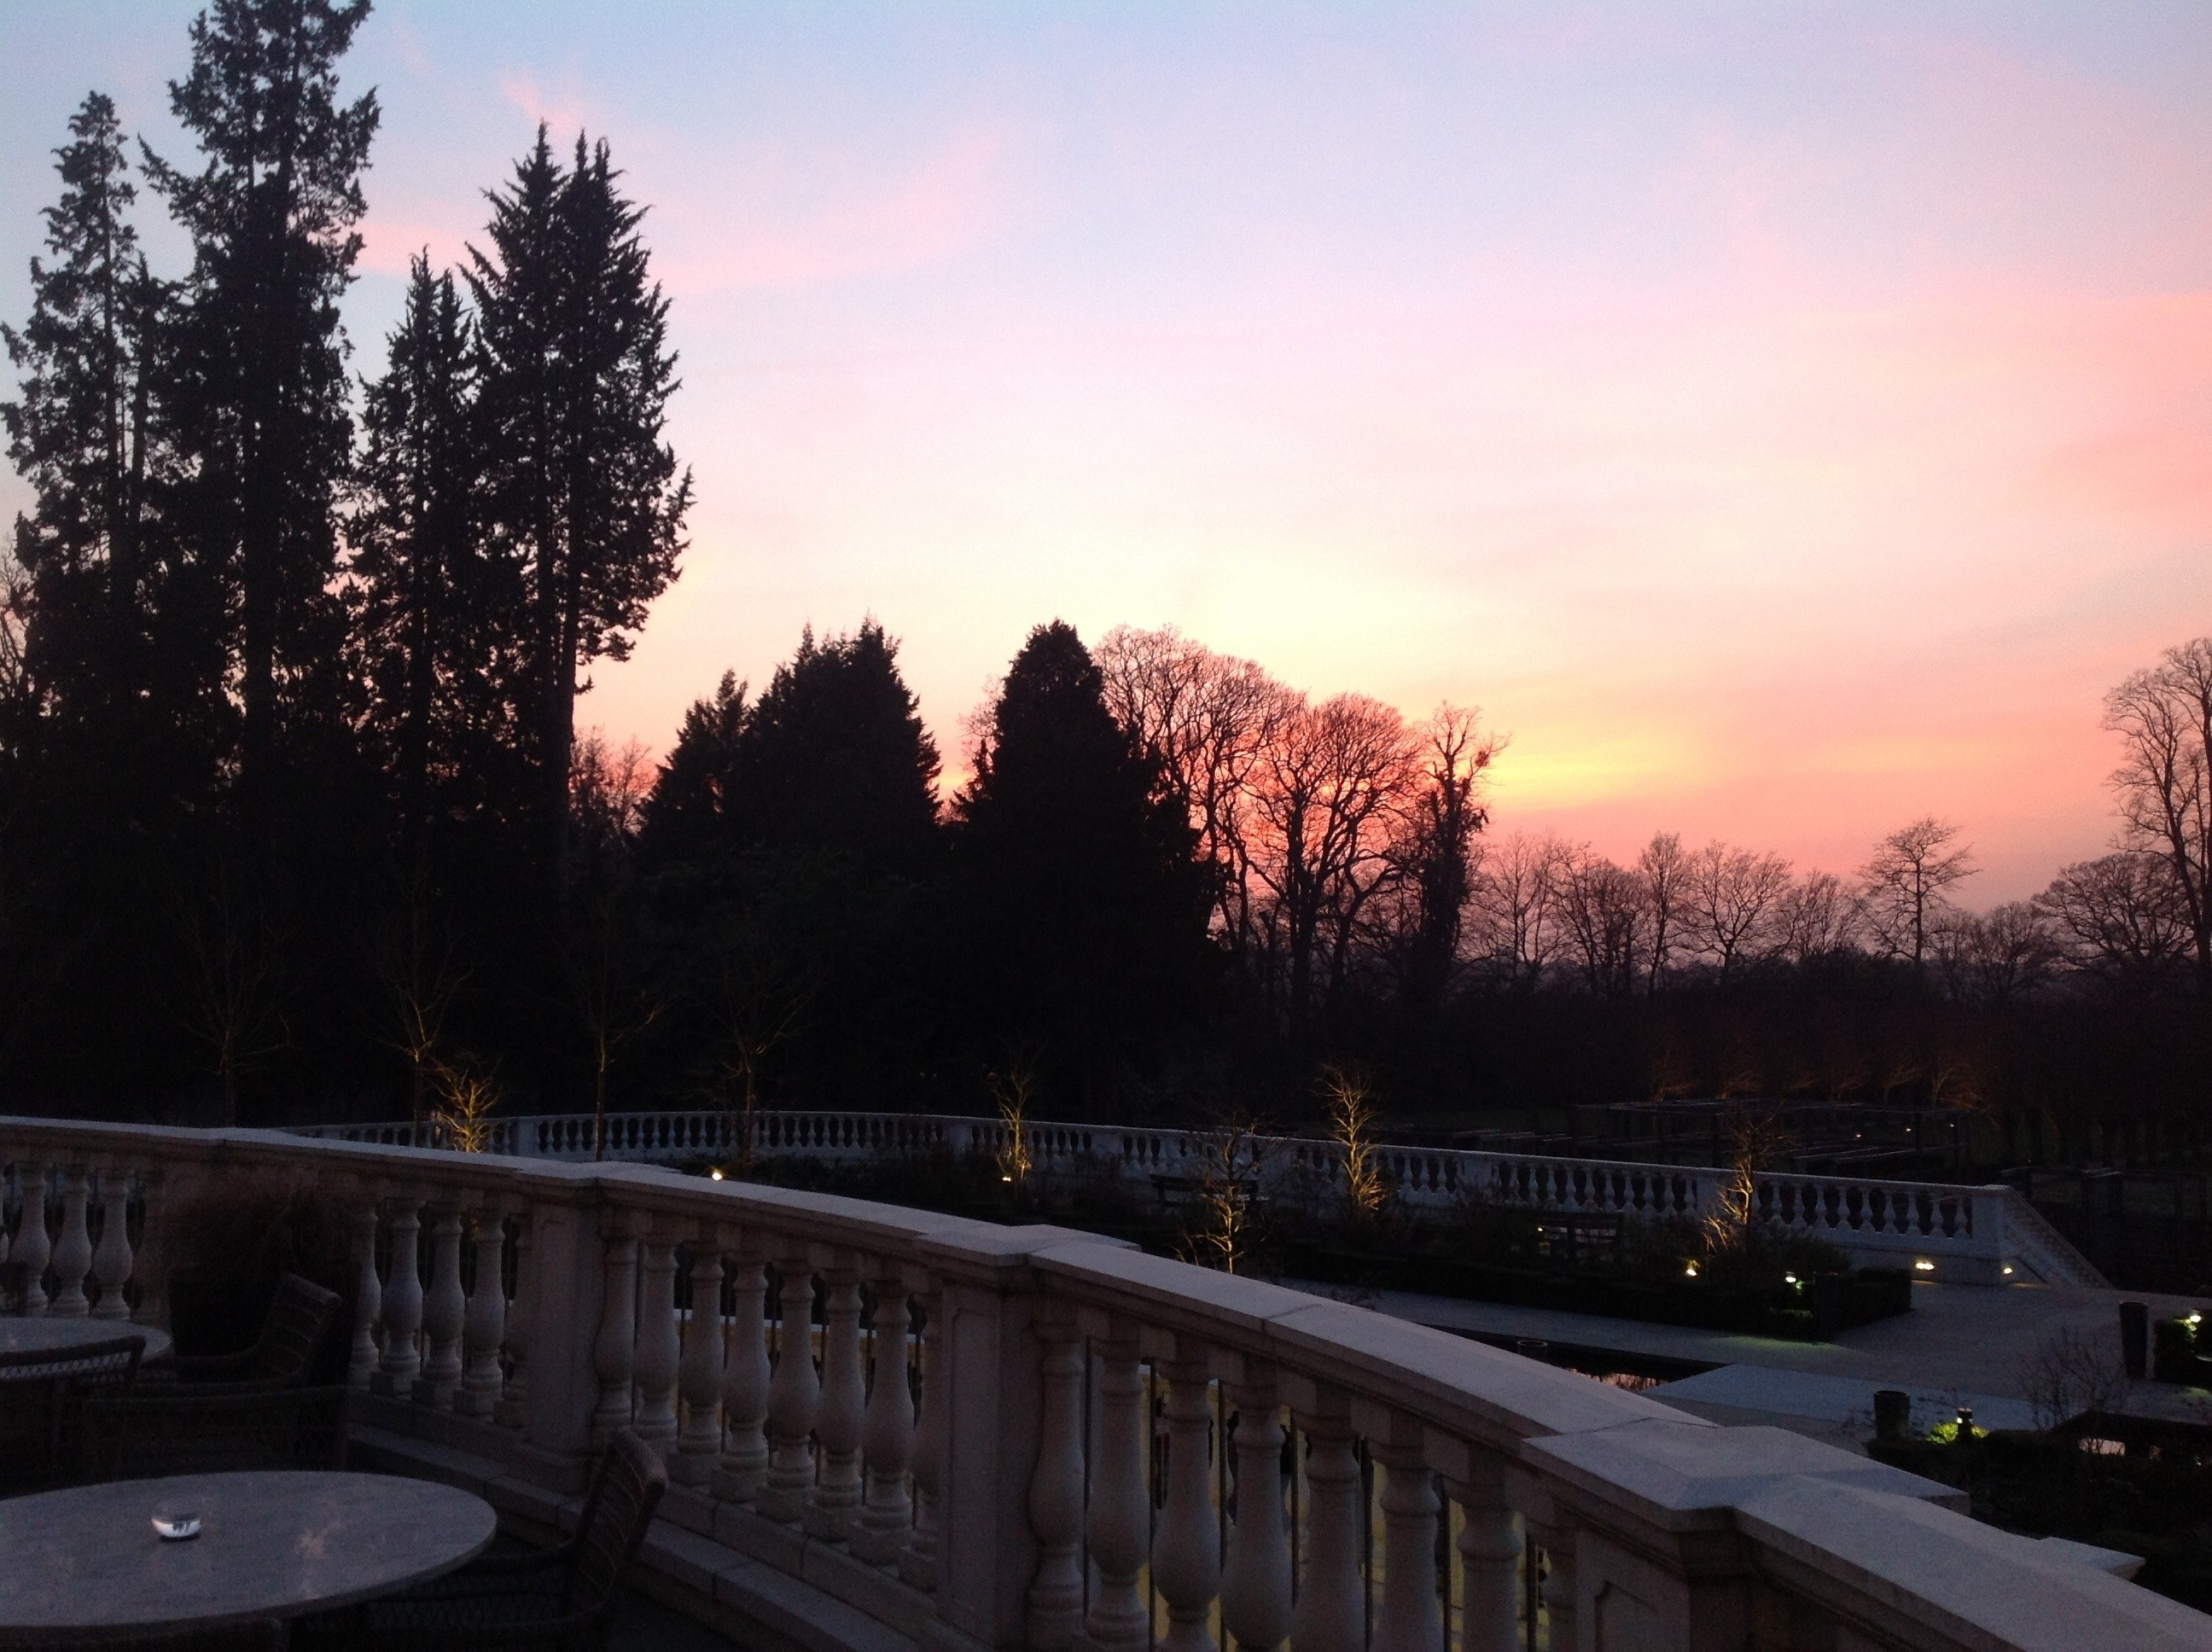 Happy #EarthDay! Here's a pretty sunset from @CoworthParkUK